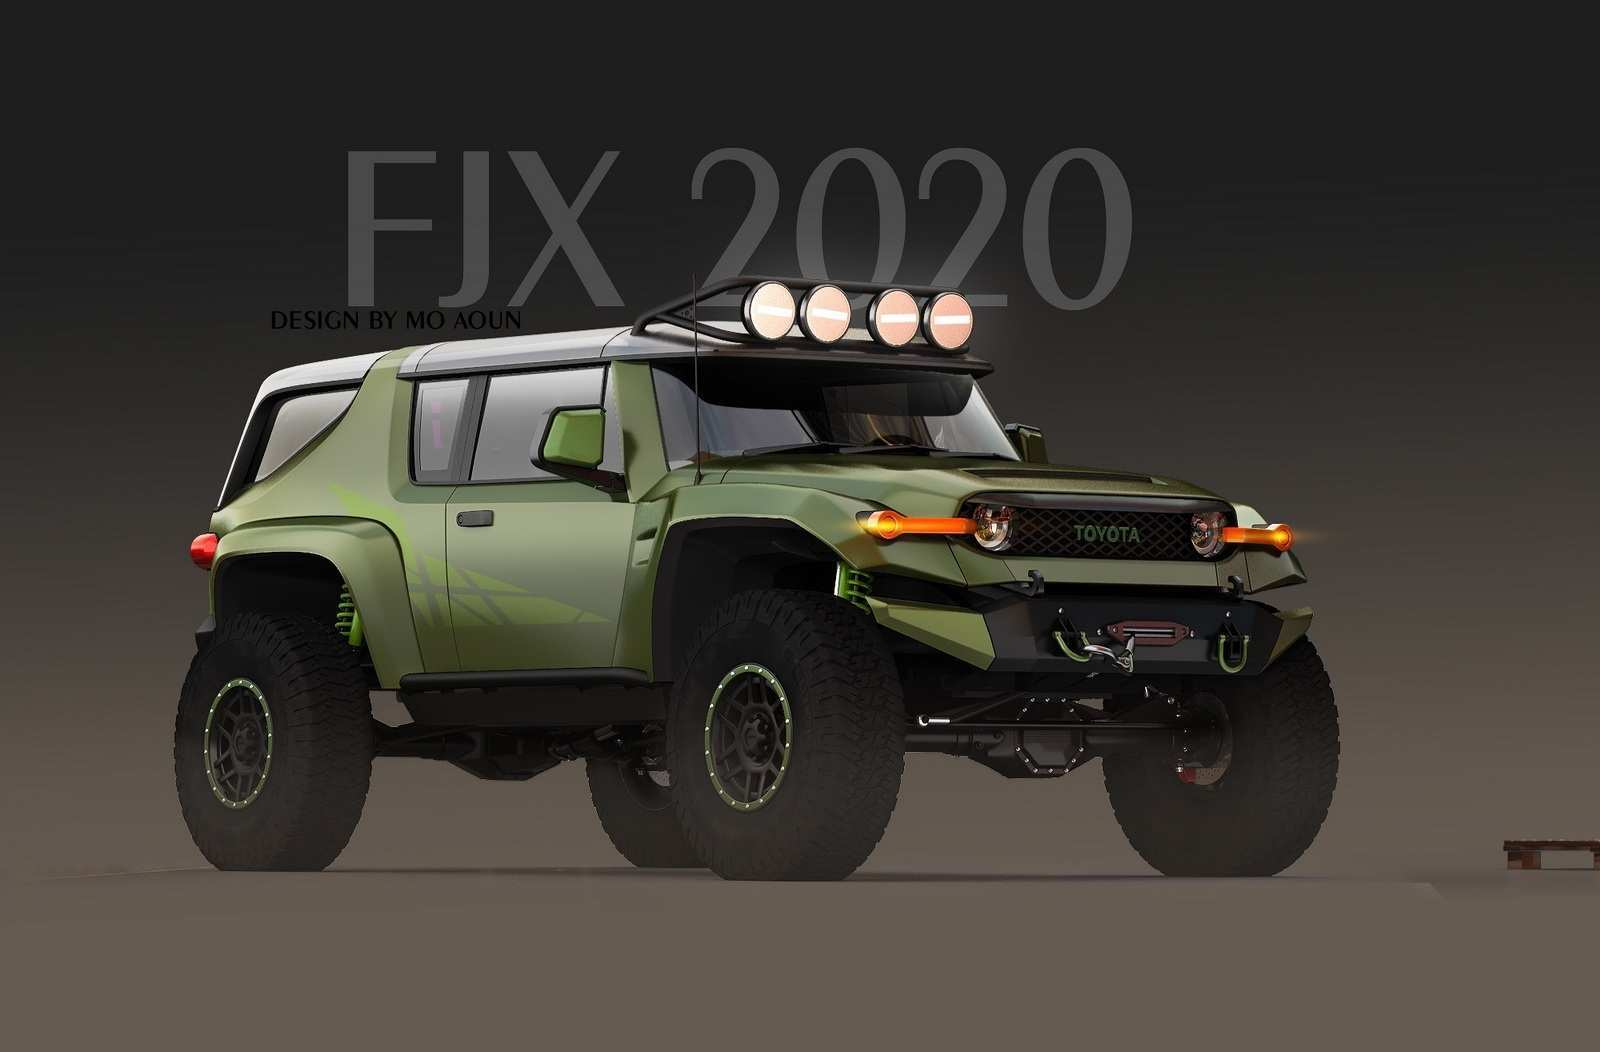 81 All New 2020 Fj Cruiser Specs And Review